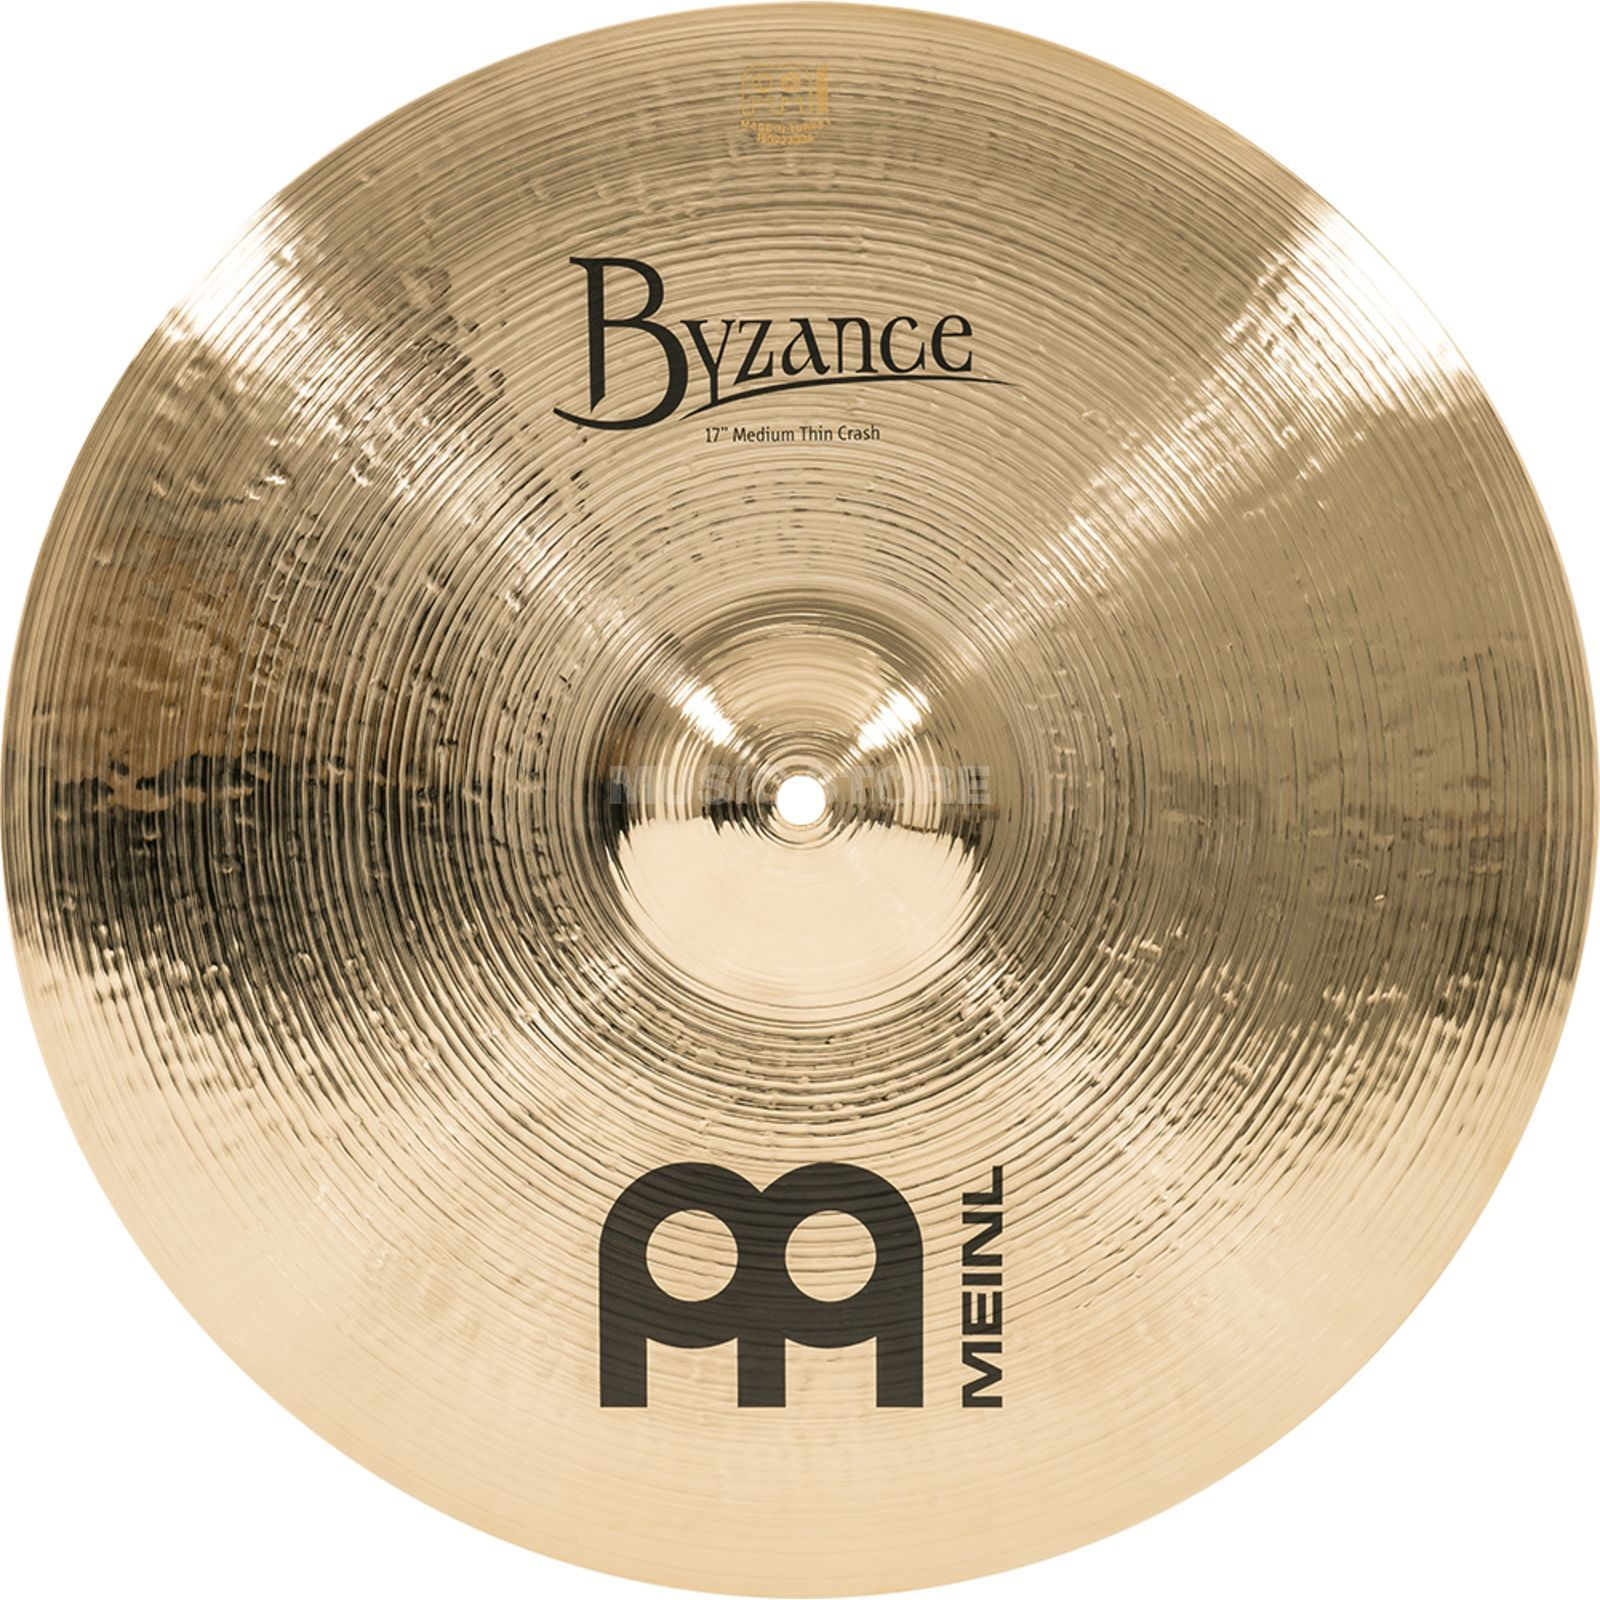 "Meinl Byzance Medium Thin Crash 17"" B17MTC-B, Brilliant Finish Produktbild"